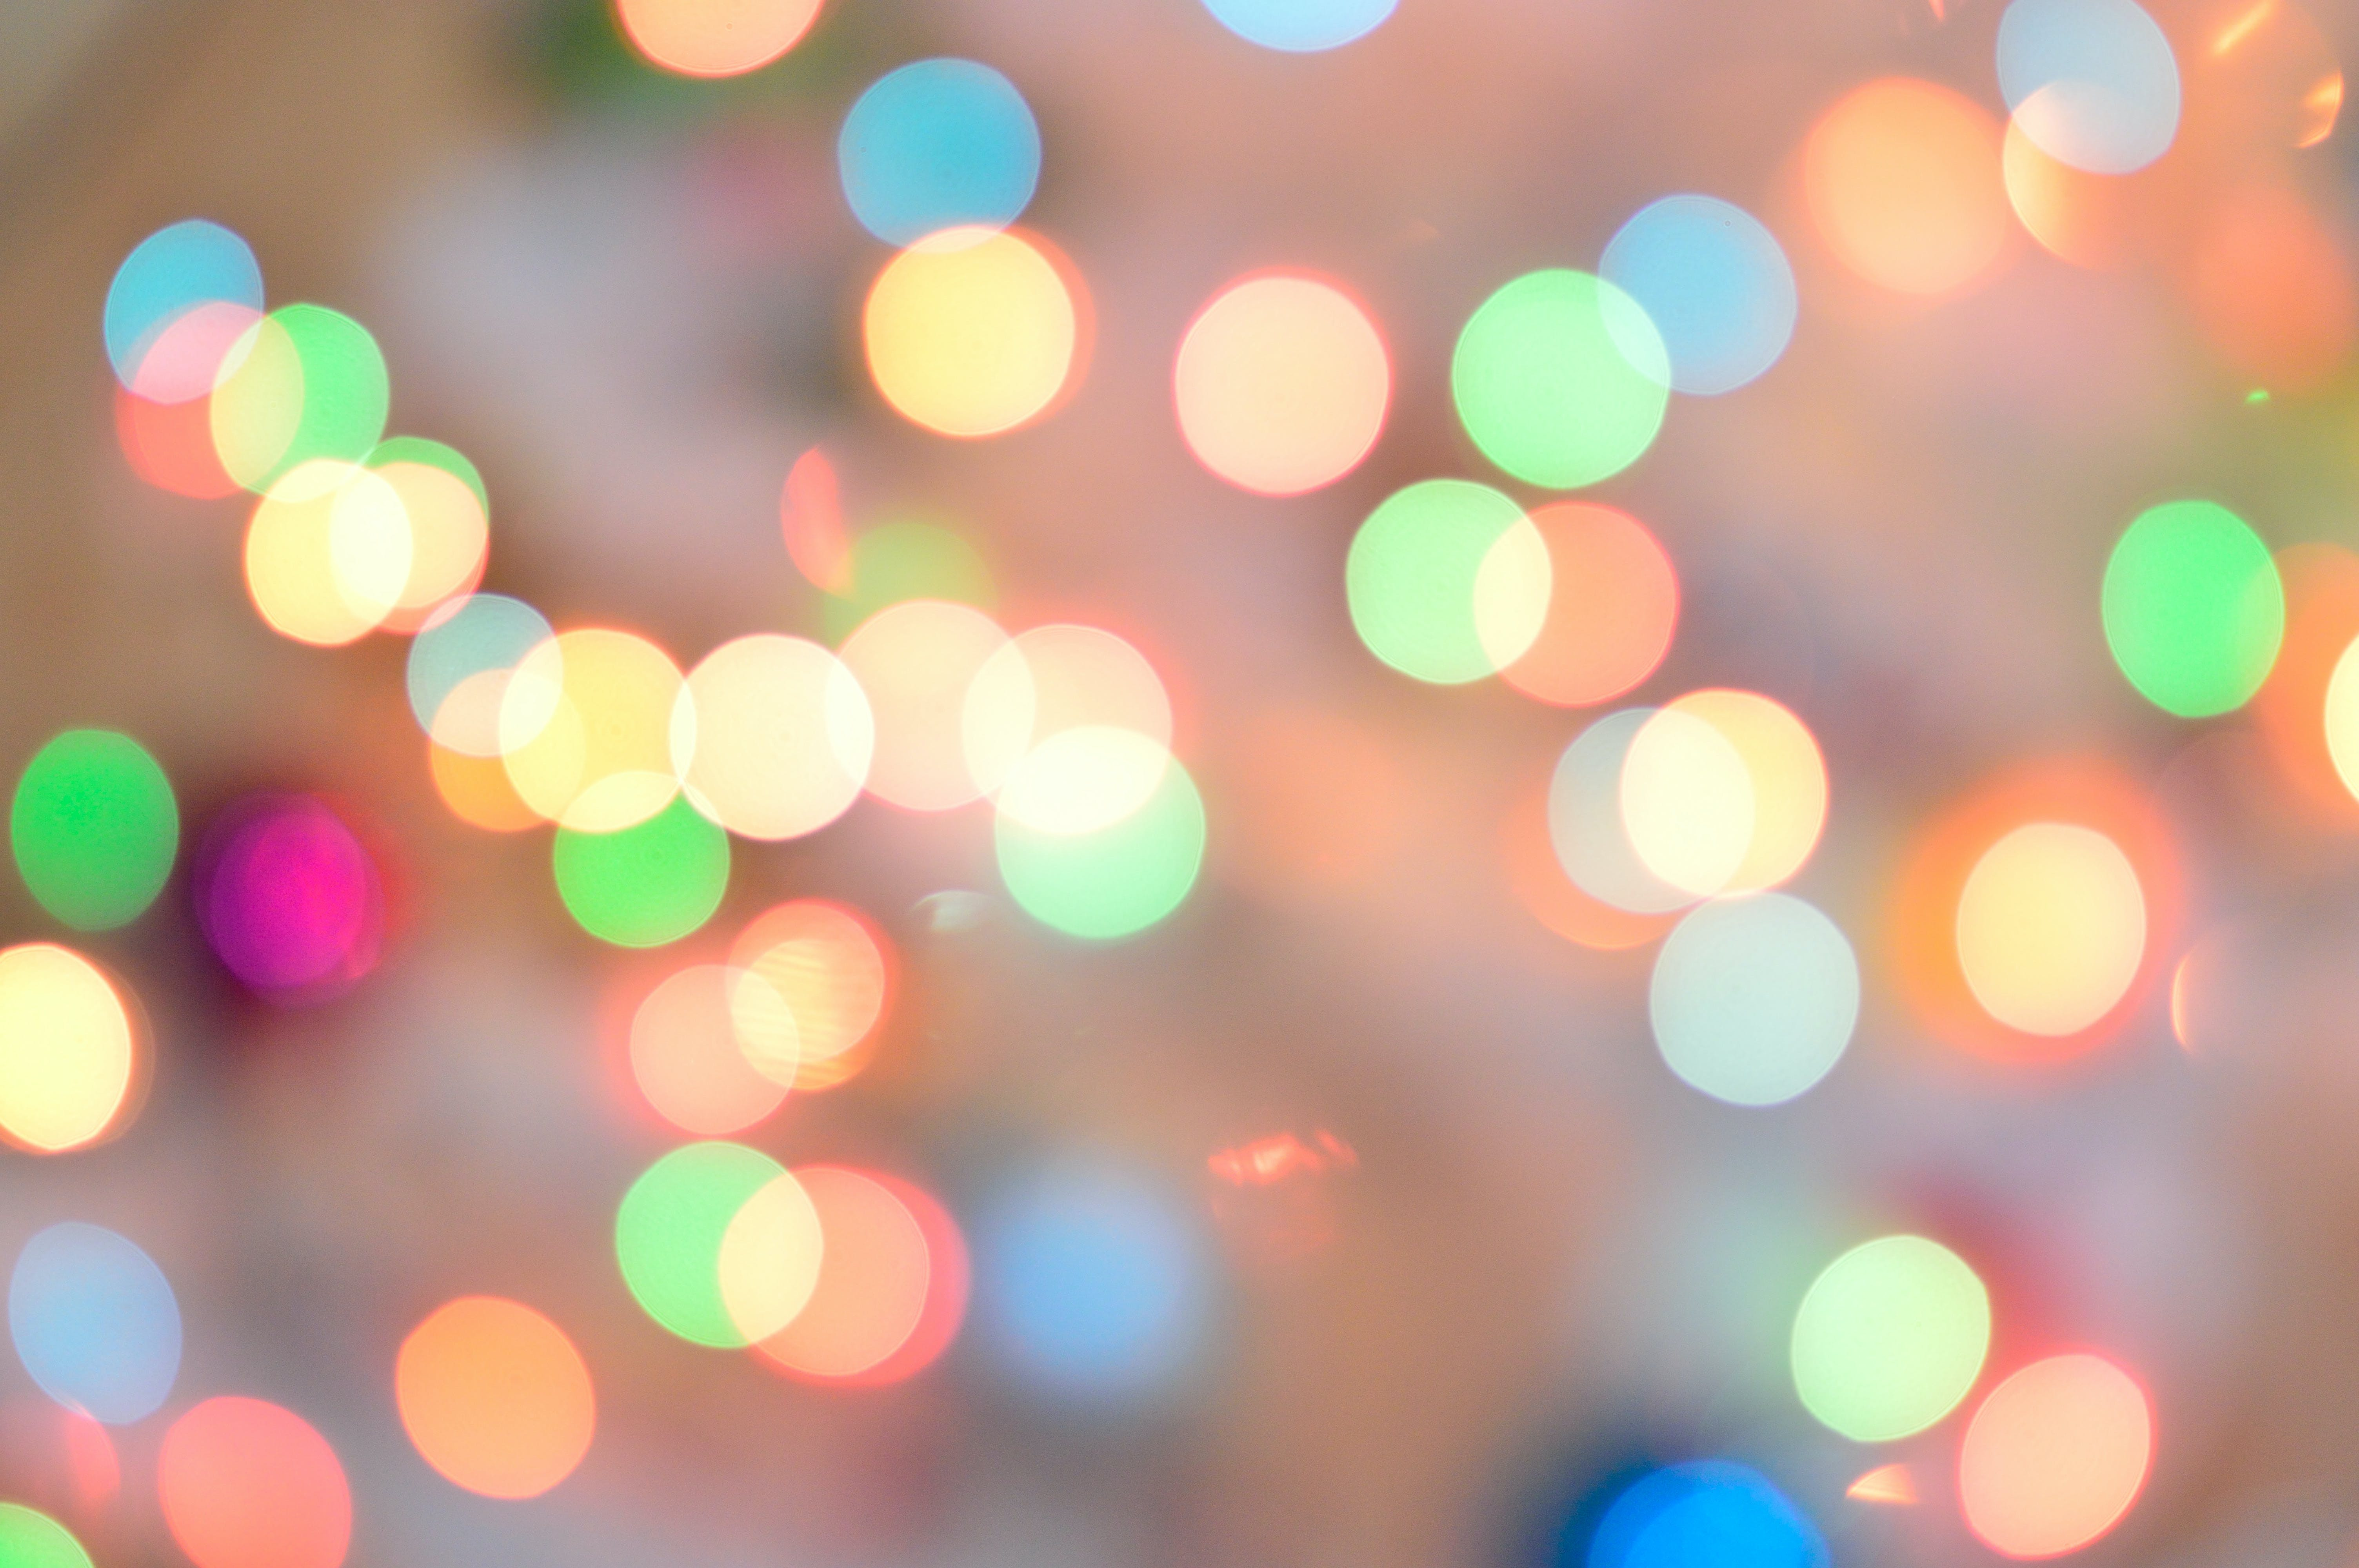 Defocused Image of Illuminated Christmas Lights